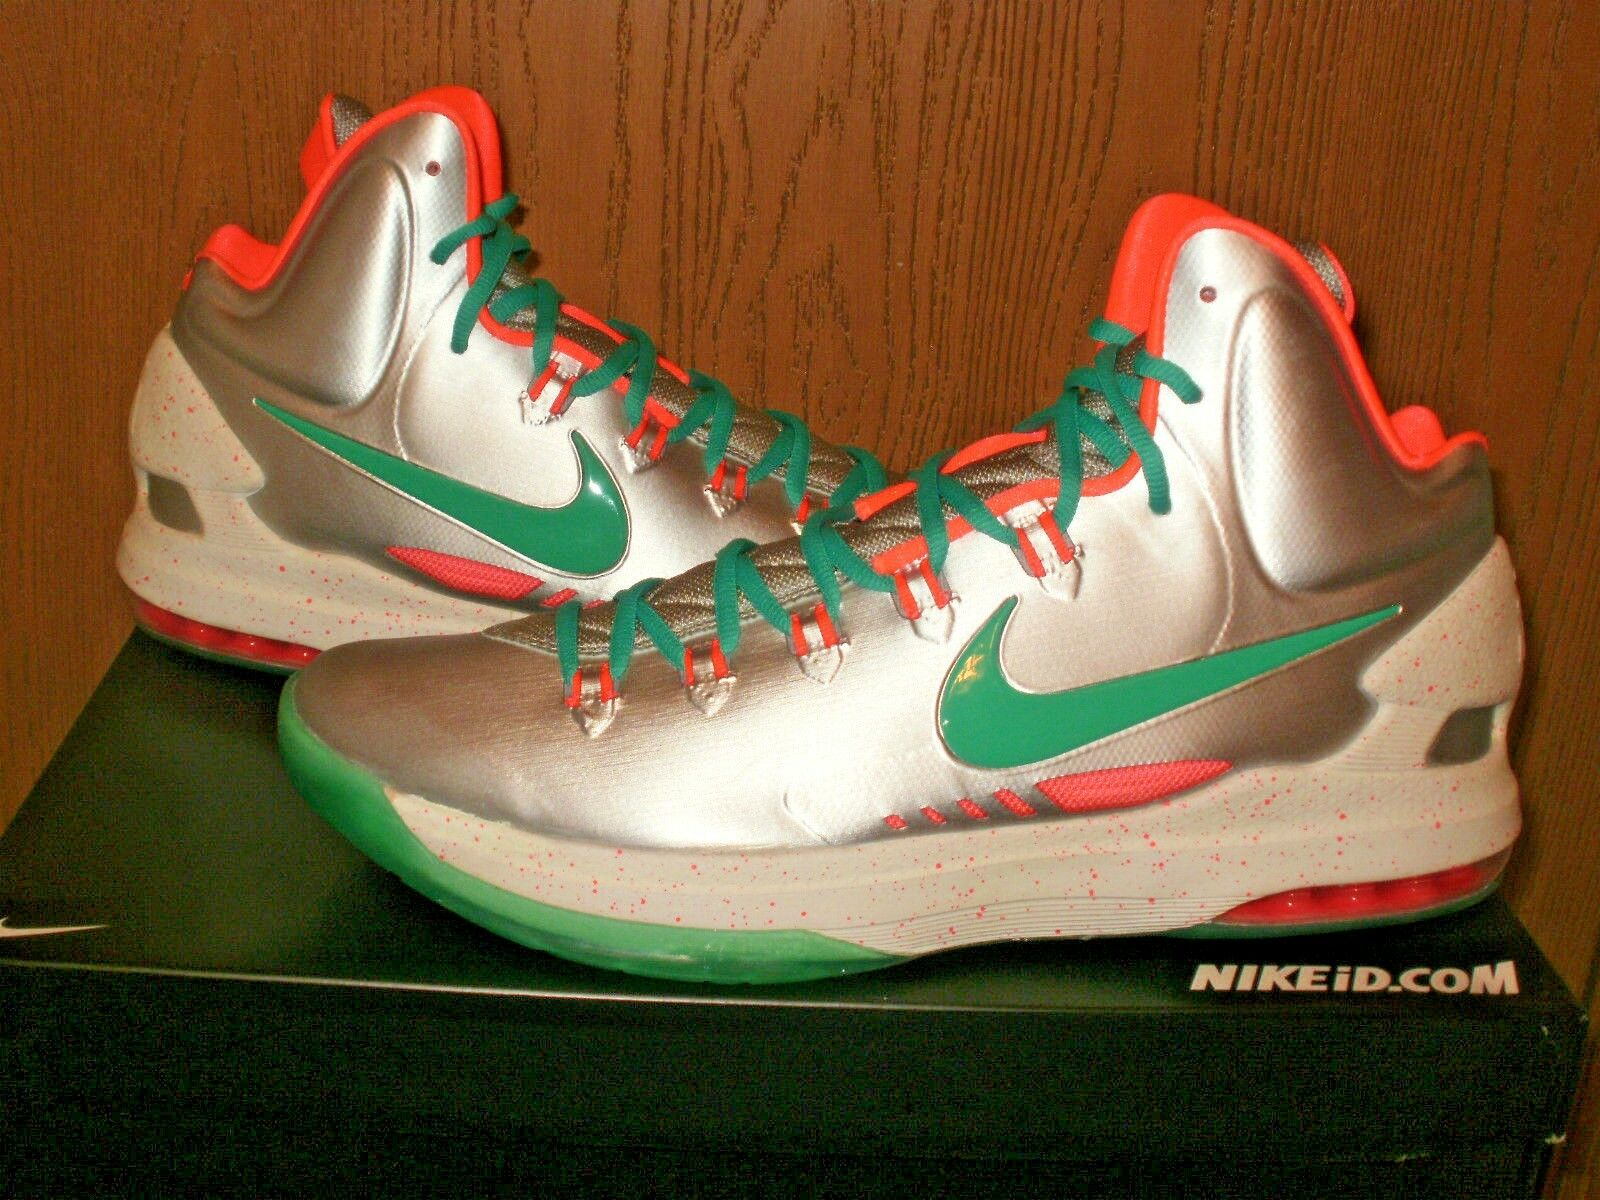 KD V 5 Nike ID Kevin Durant Durant Durant Glow-in-the-dark! Marty Mcfly Air Mag-inspired!  311c05